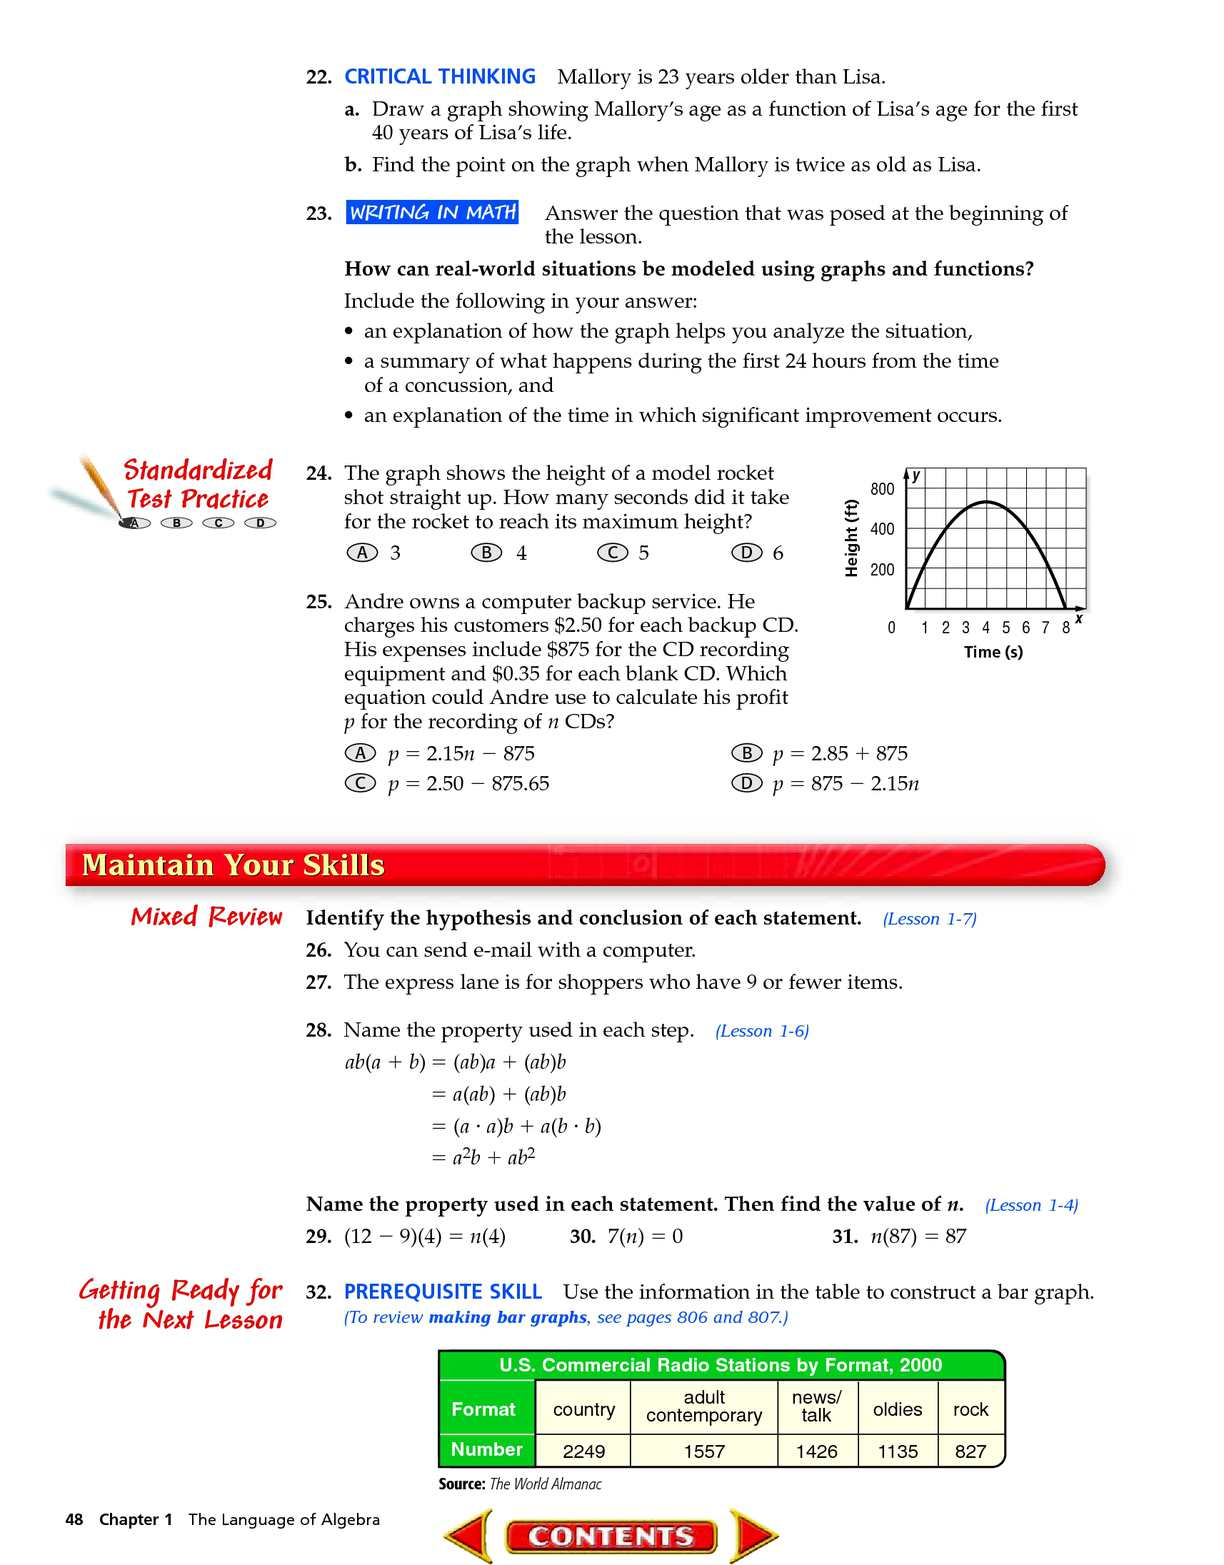 Algebra 1 McGraw-Hill - CALAMEO Downloader